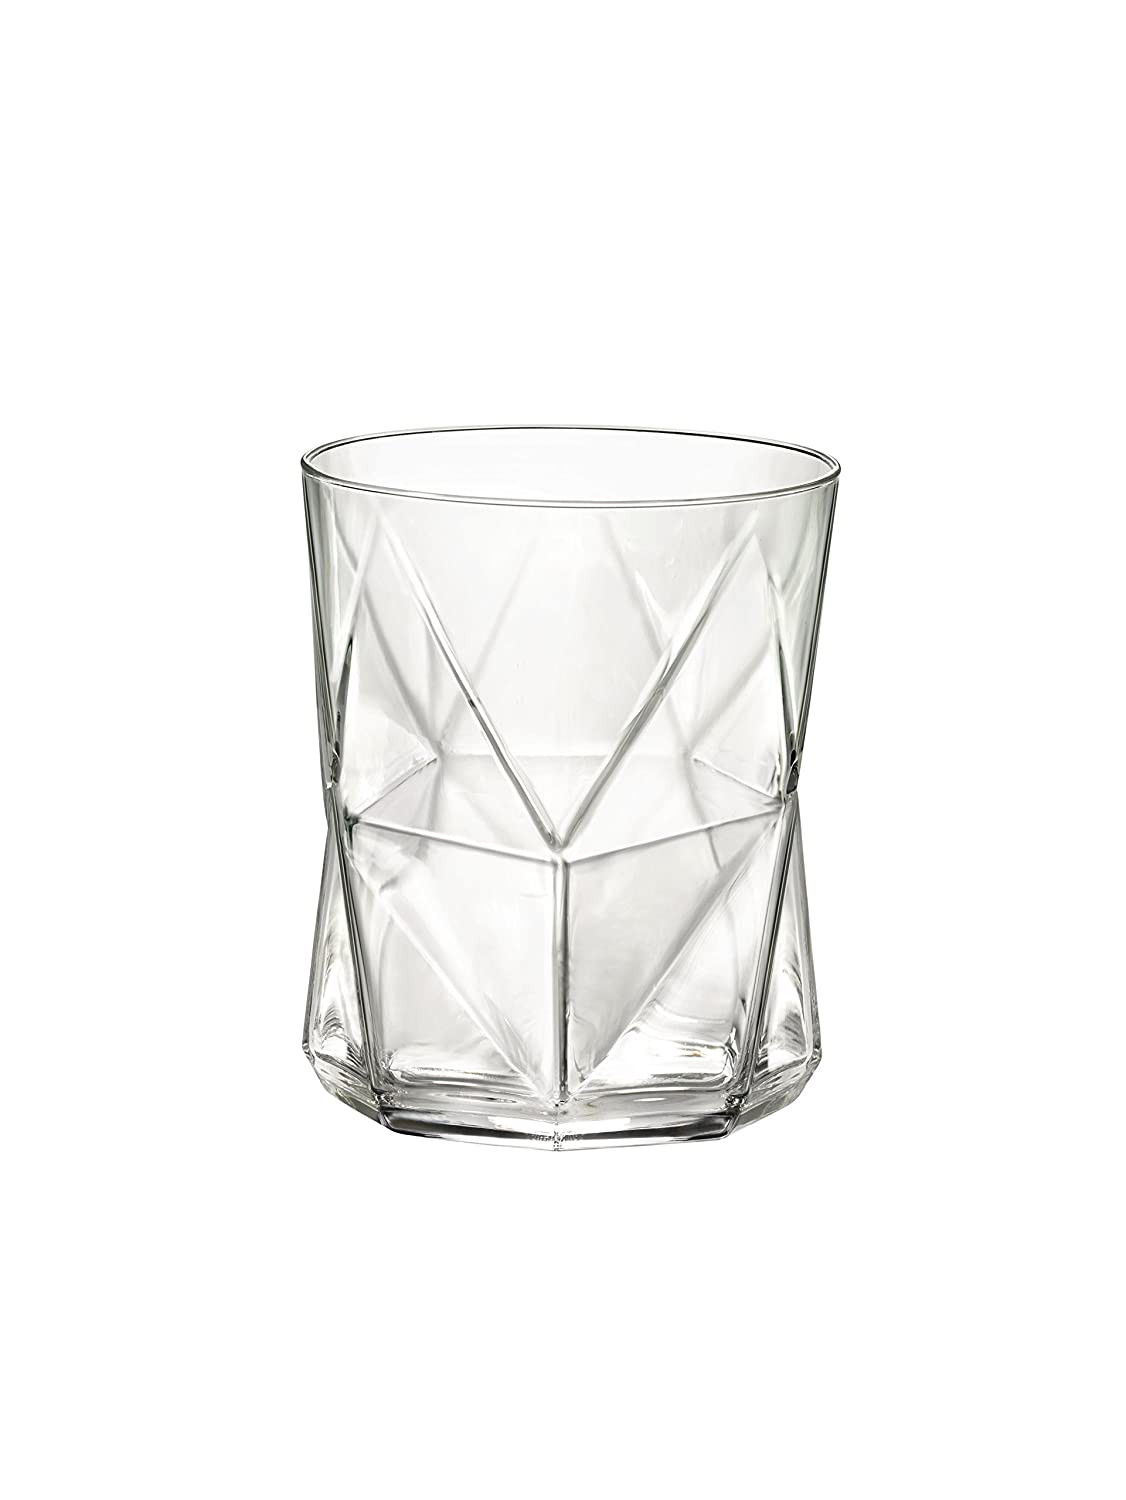 Bormioli Rocco Cassiopea Double Old Fashioned Glass, Set of 4 Bormioli Rocco Glass Co. Inc. 234520G10021990